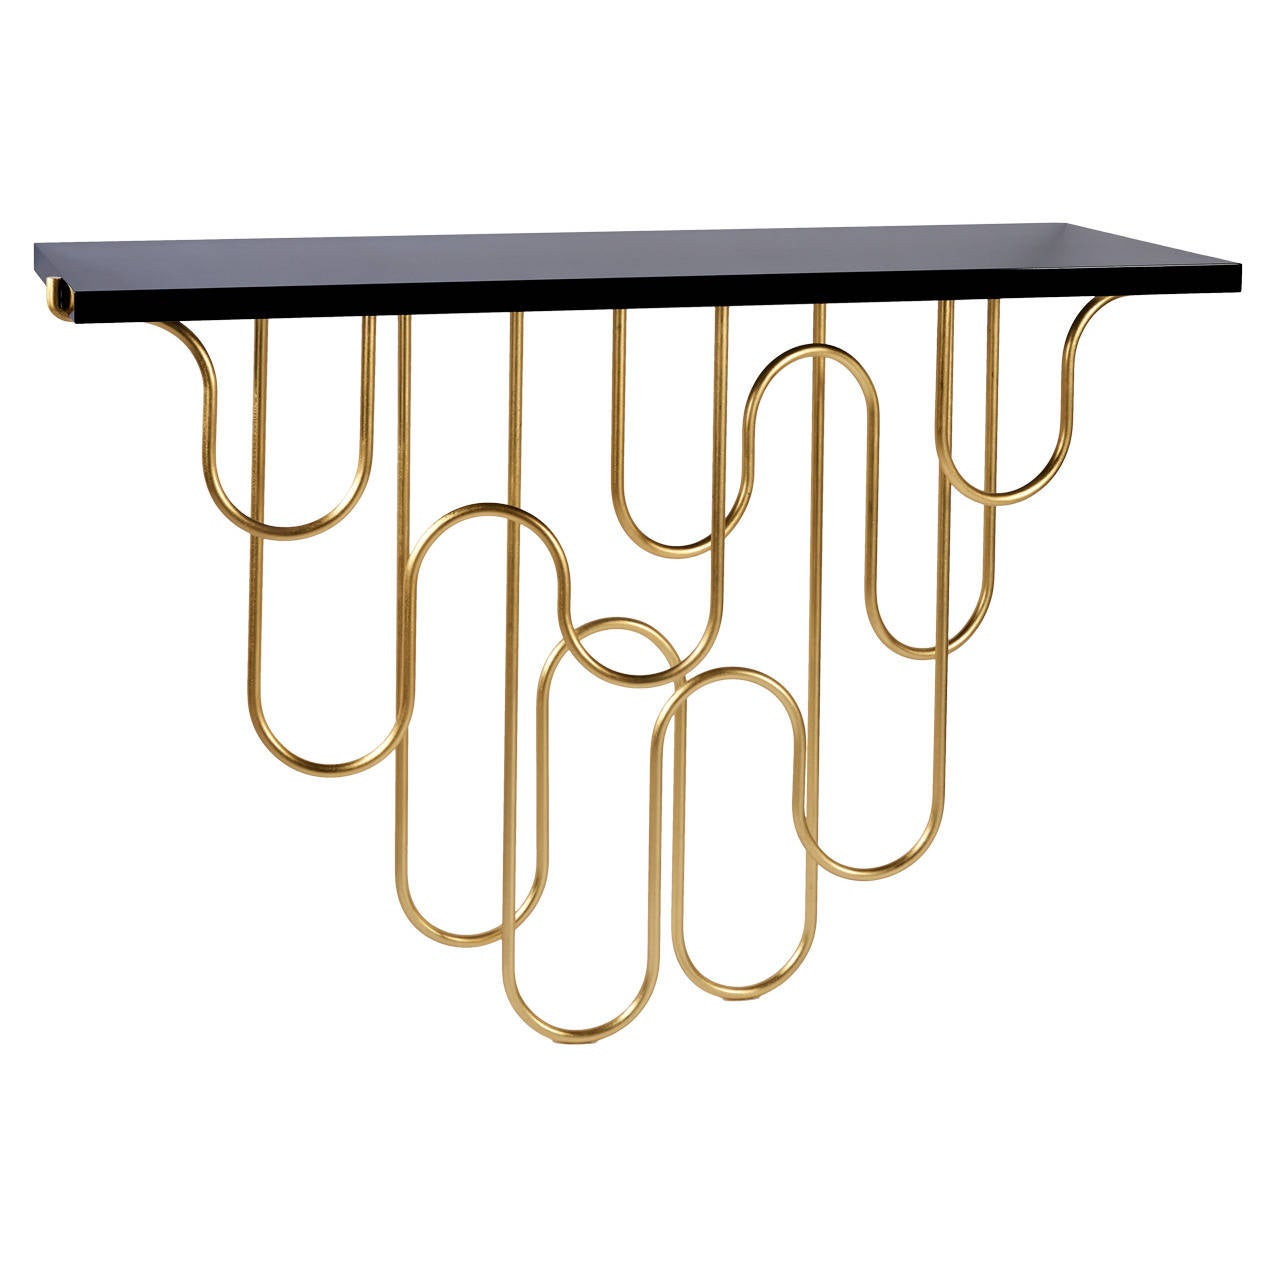 1st Dibs 1st dibs 10 Incredible Modern Console Tables on 1st Dibs 2284842 l